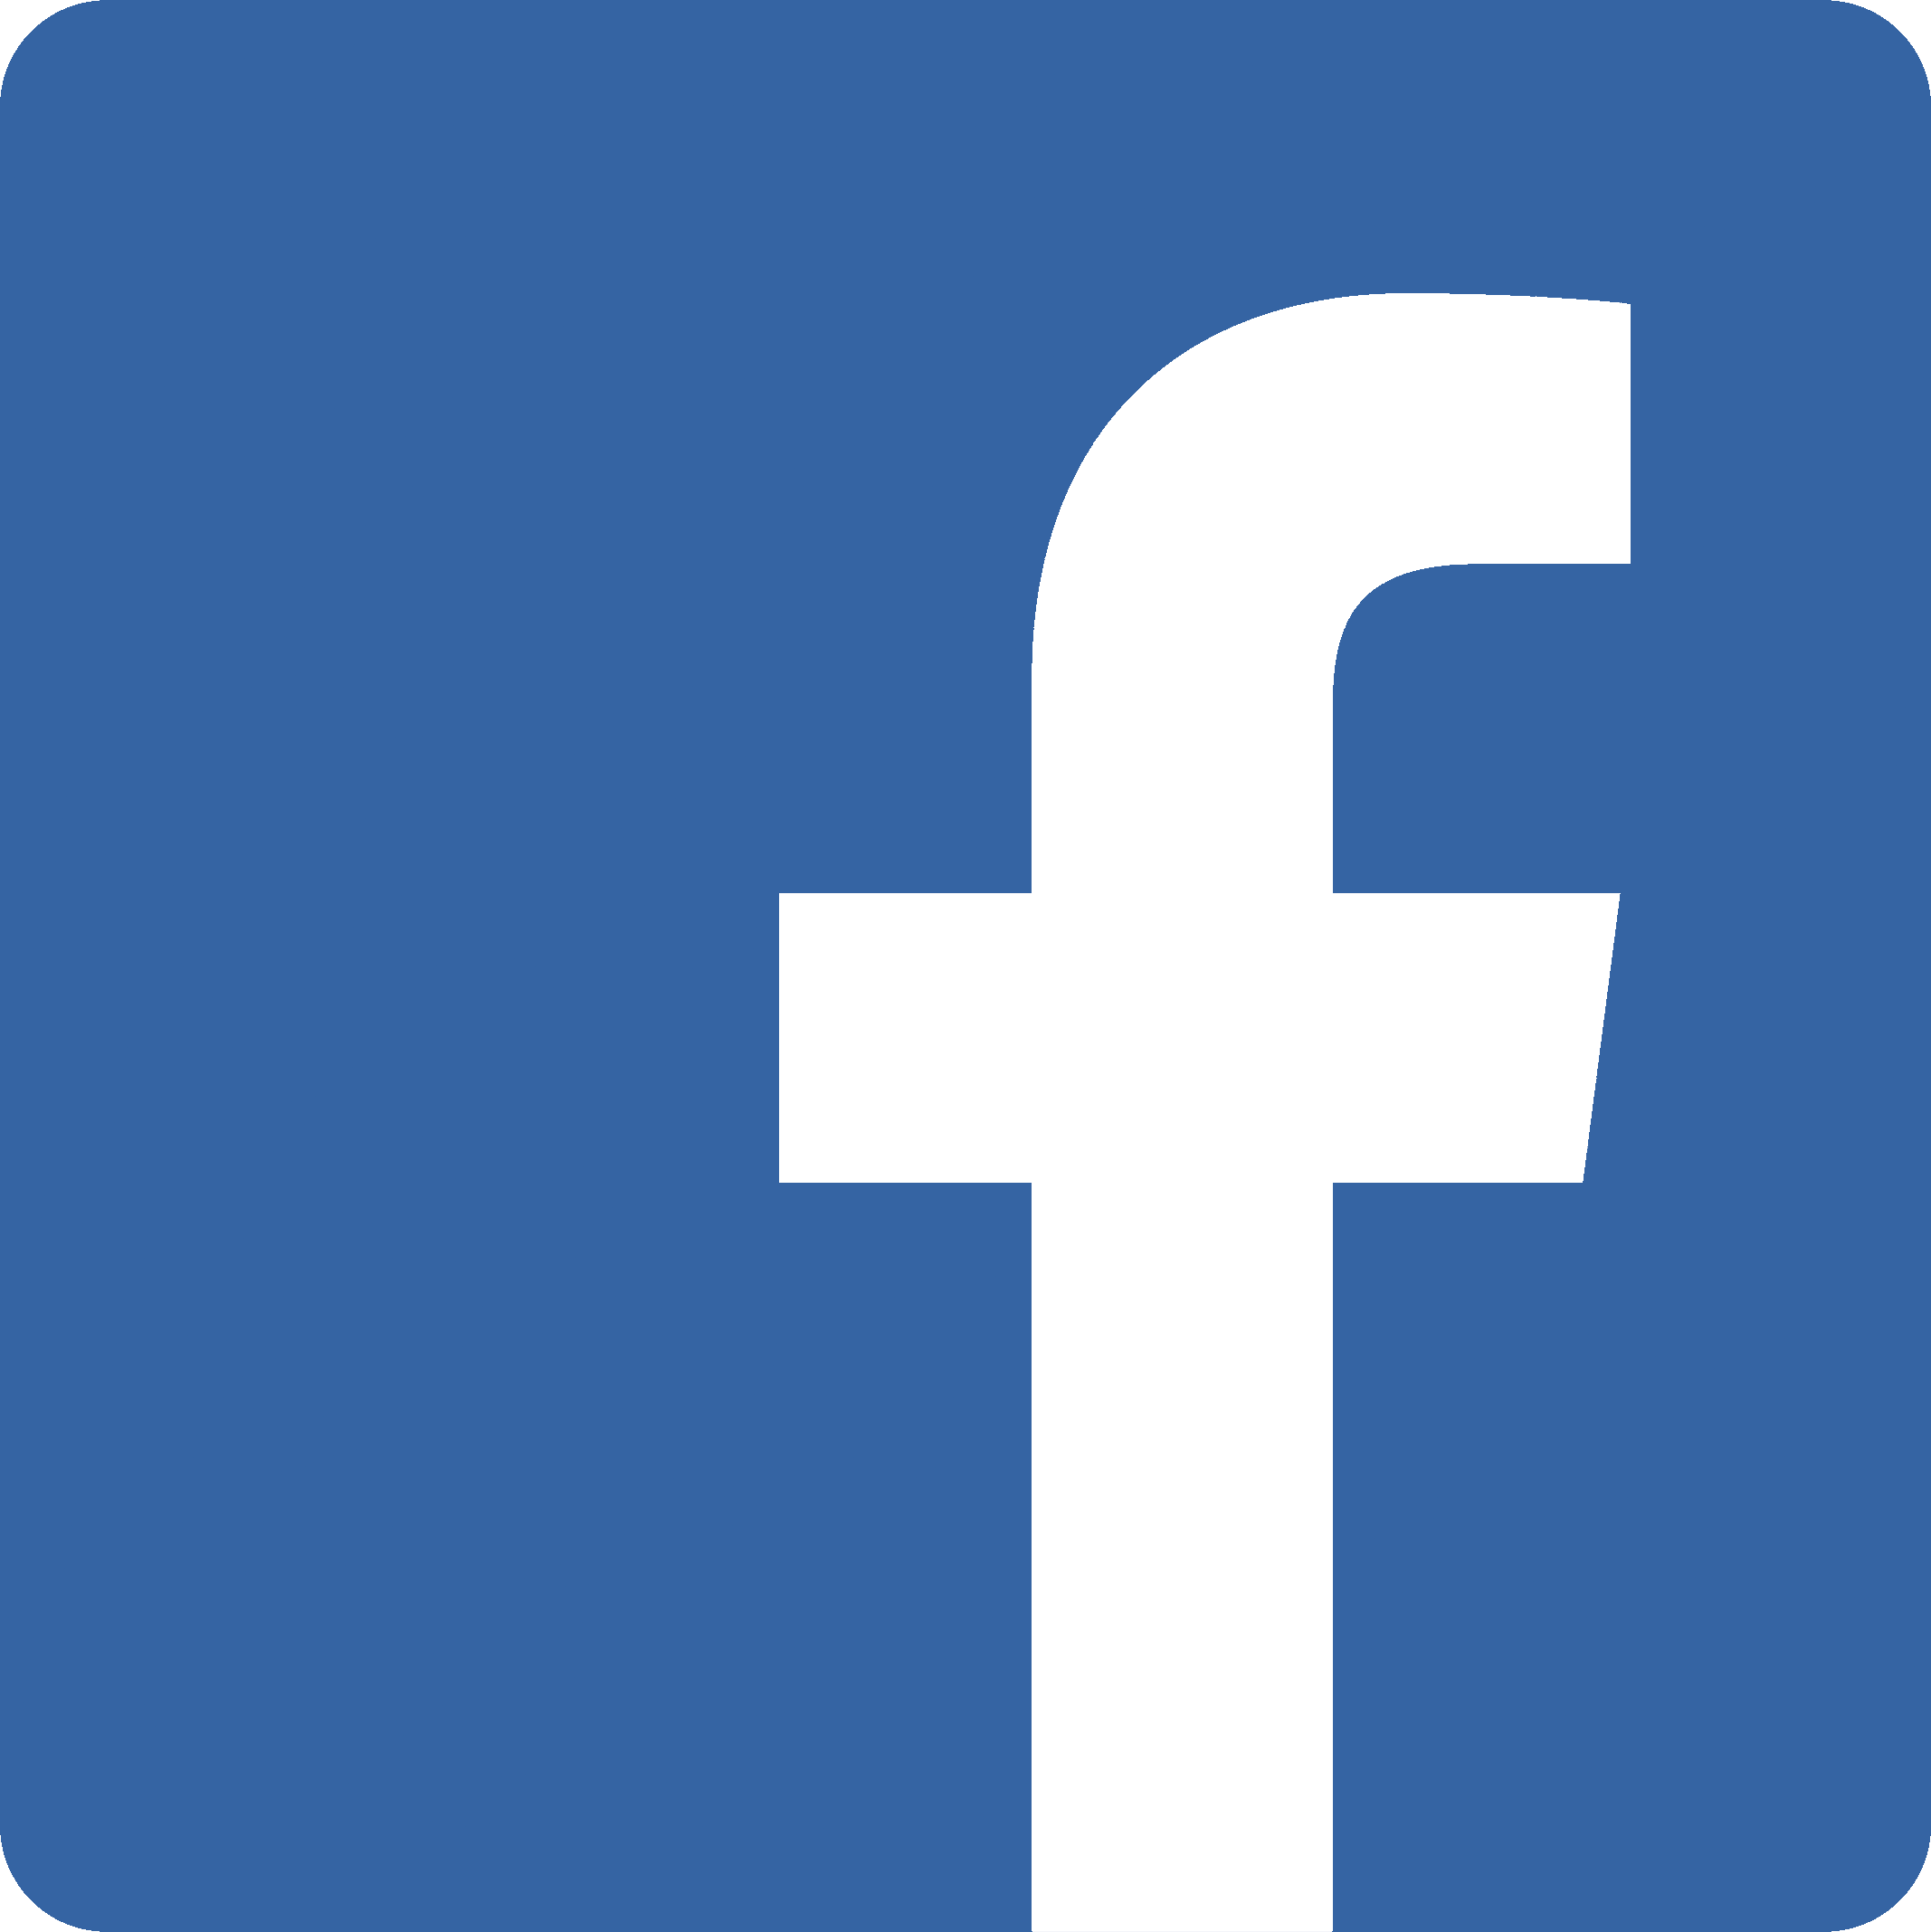 fb facebook logo blue social media mydietgoal